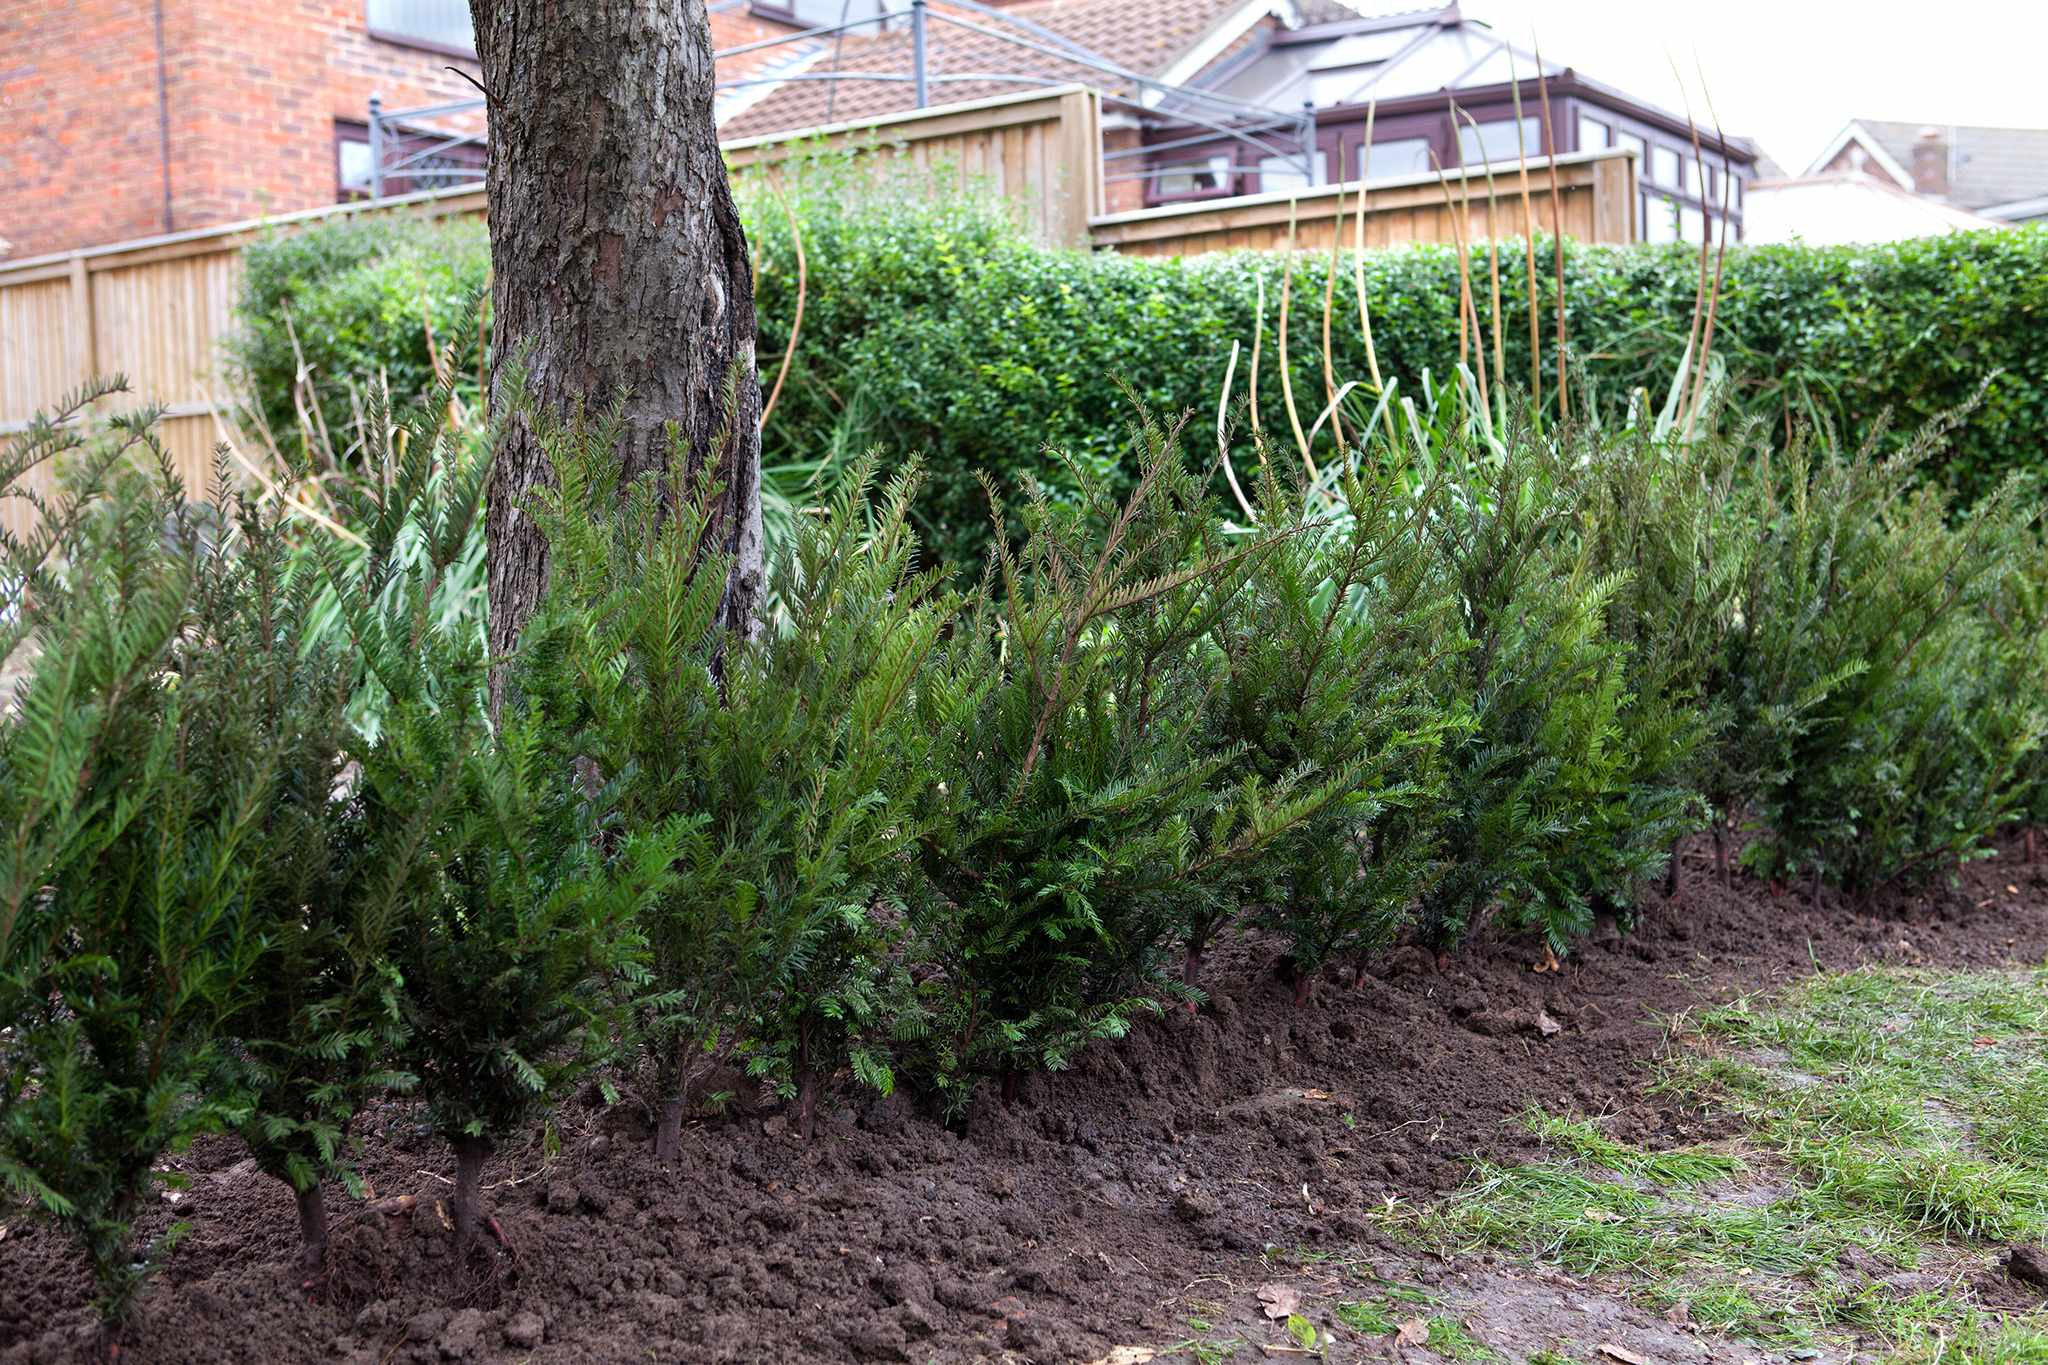 Yew (Taxus baccata) hedges